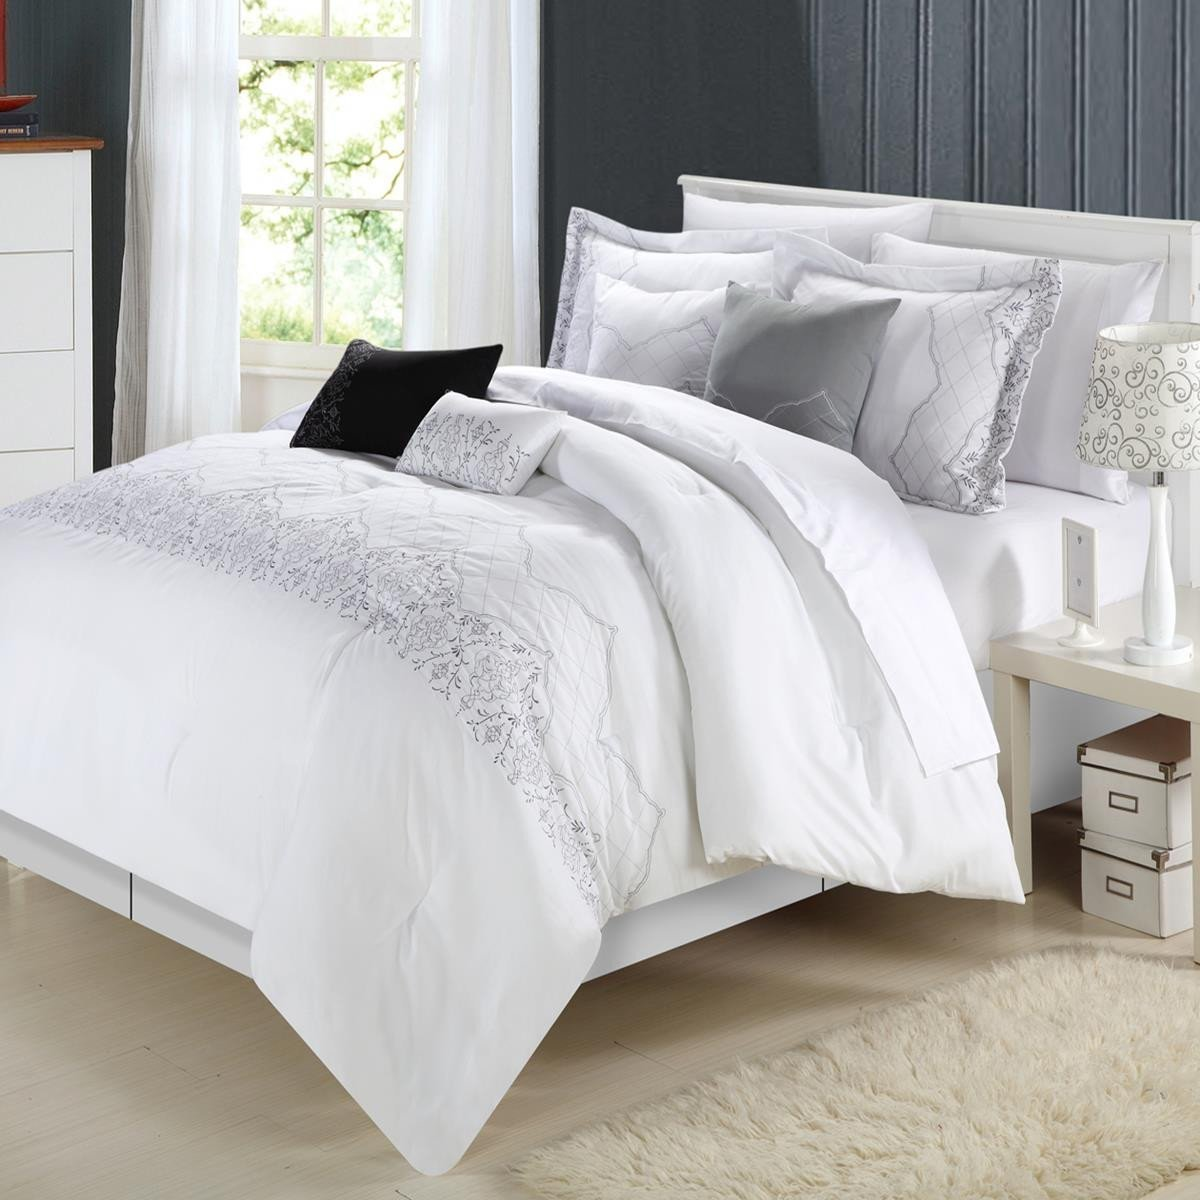 Chic Home Grace 8-Piece Comforter Set, Queen, White